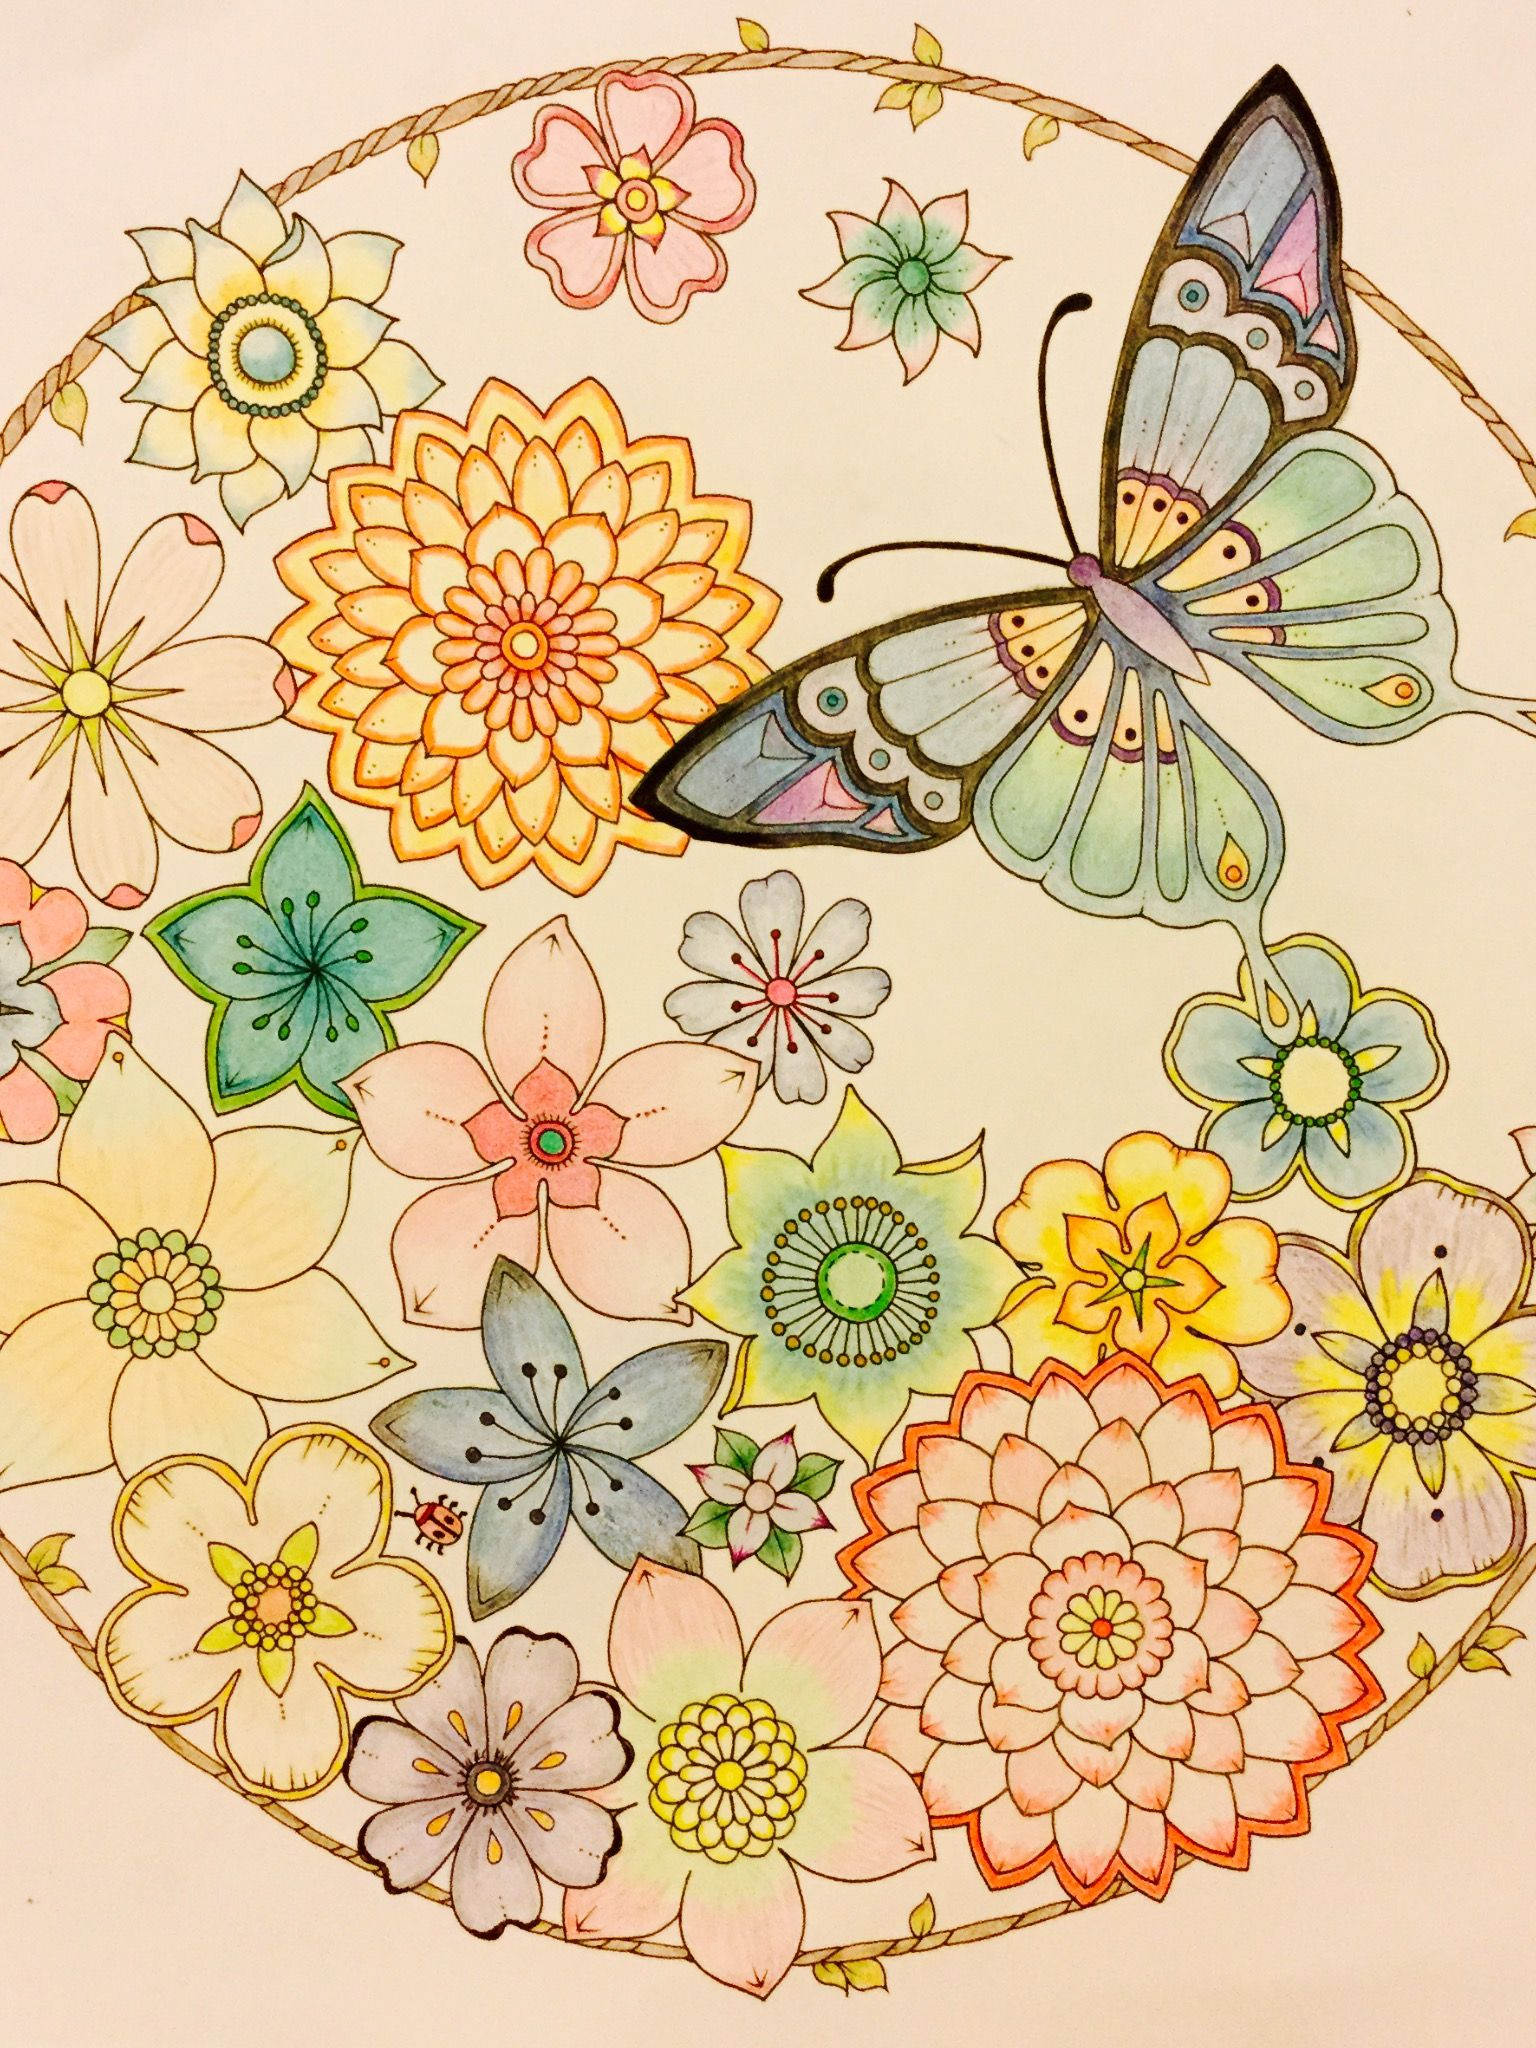 From Johanna Basfords Magical Jungle Flowers And Butterfly Mandala Finished 9 28 16